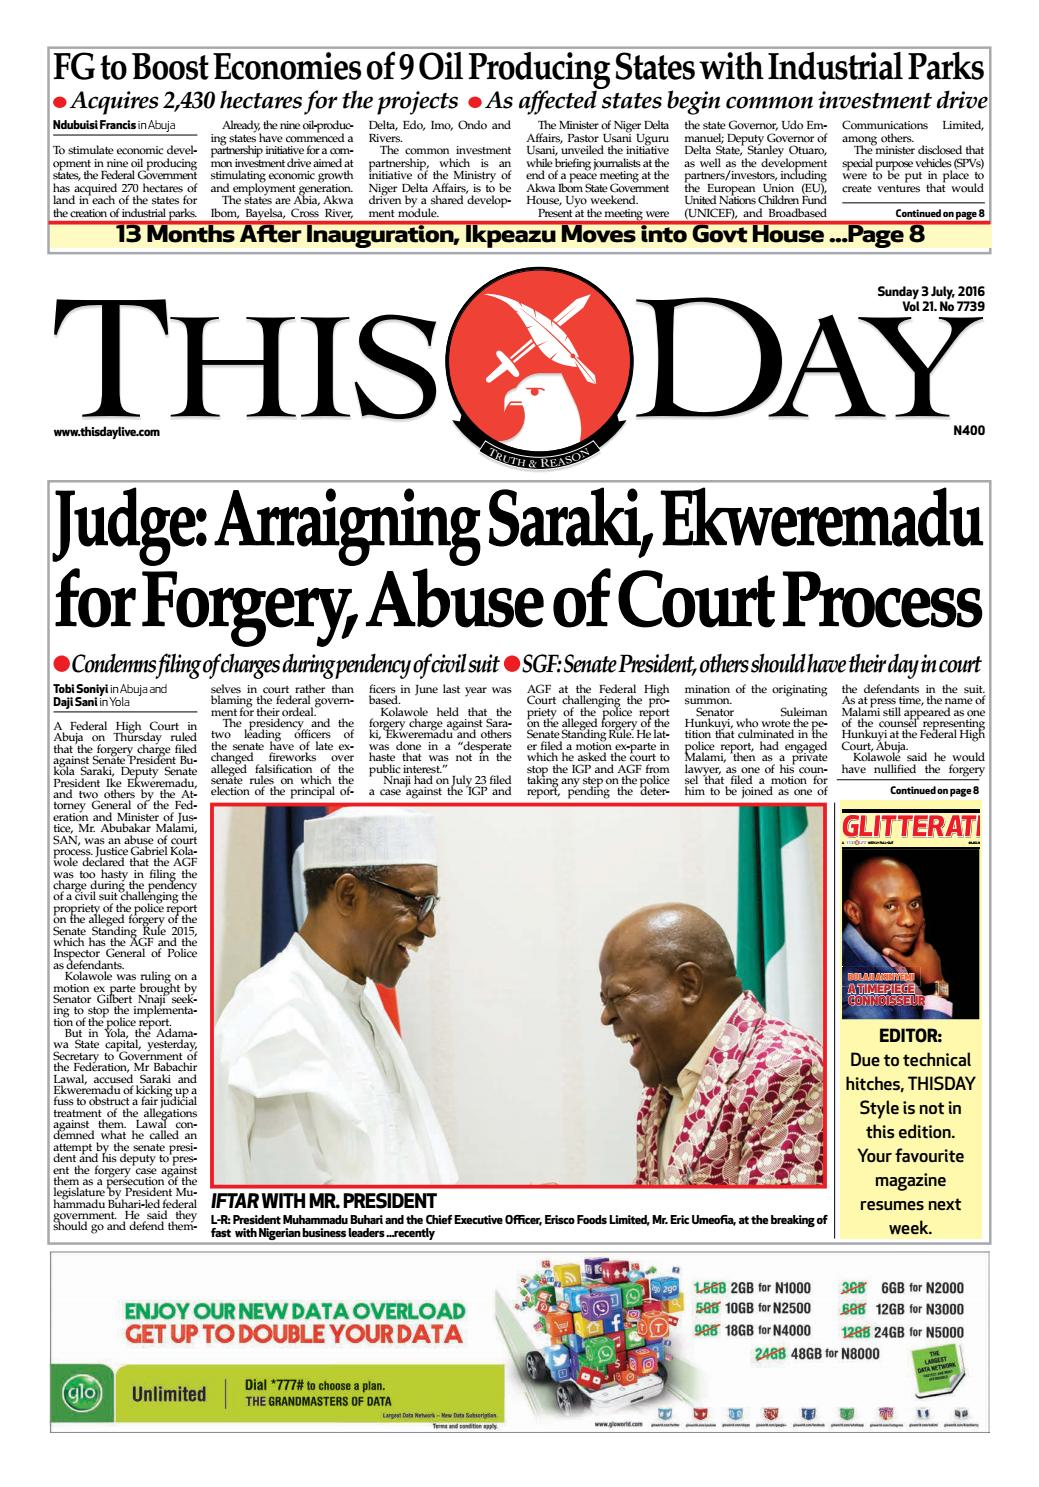 Sunday 3rd July 2016 by THISDAY Newspapers Ltd - issuu